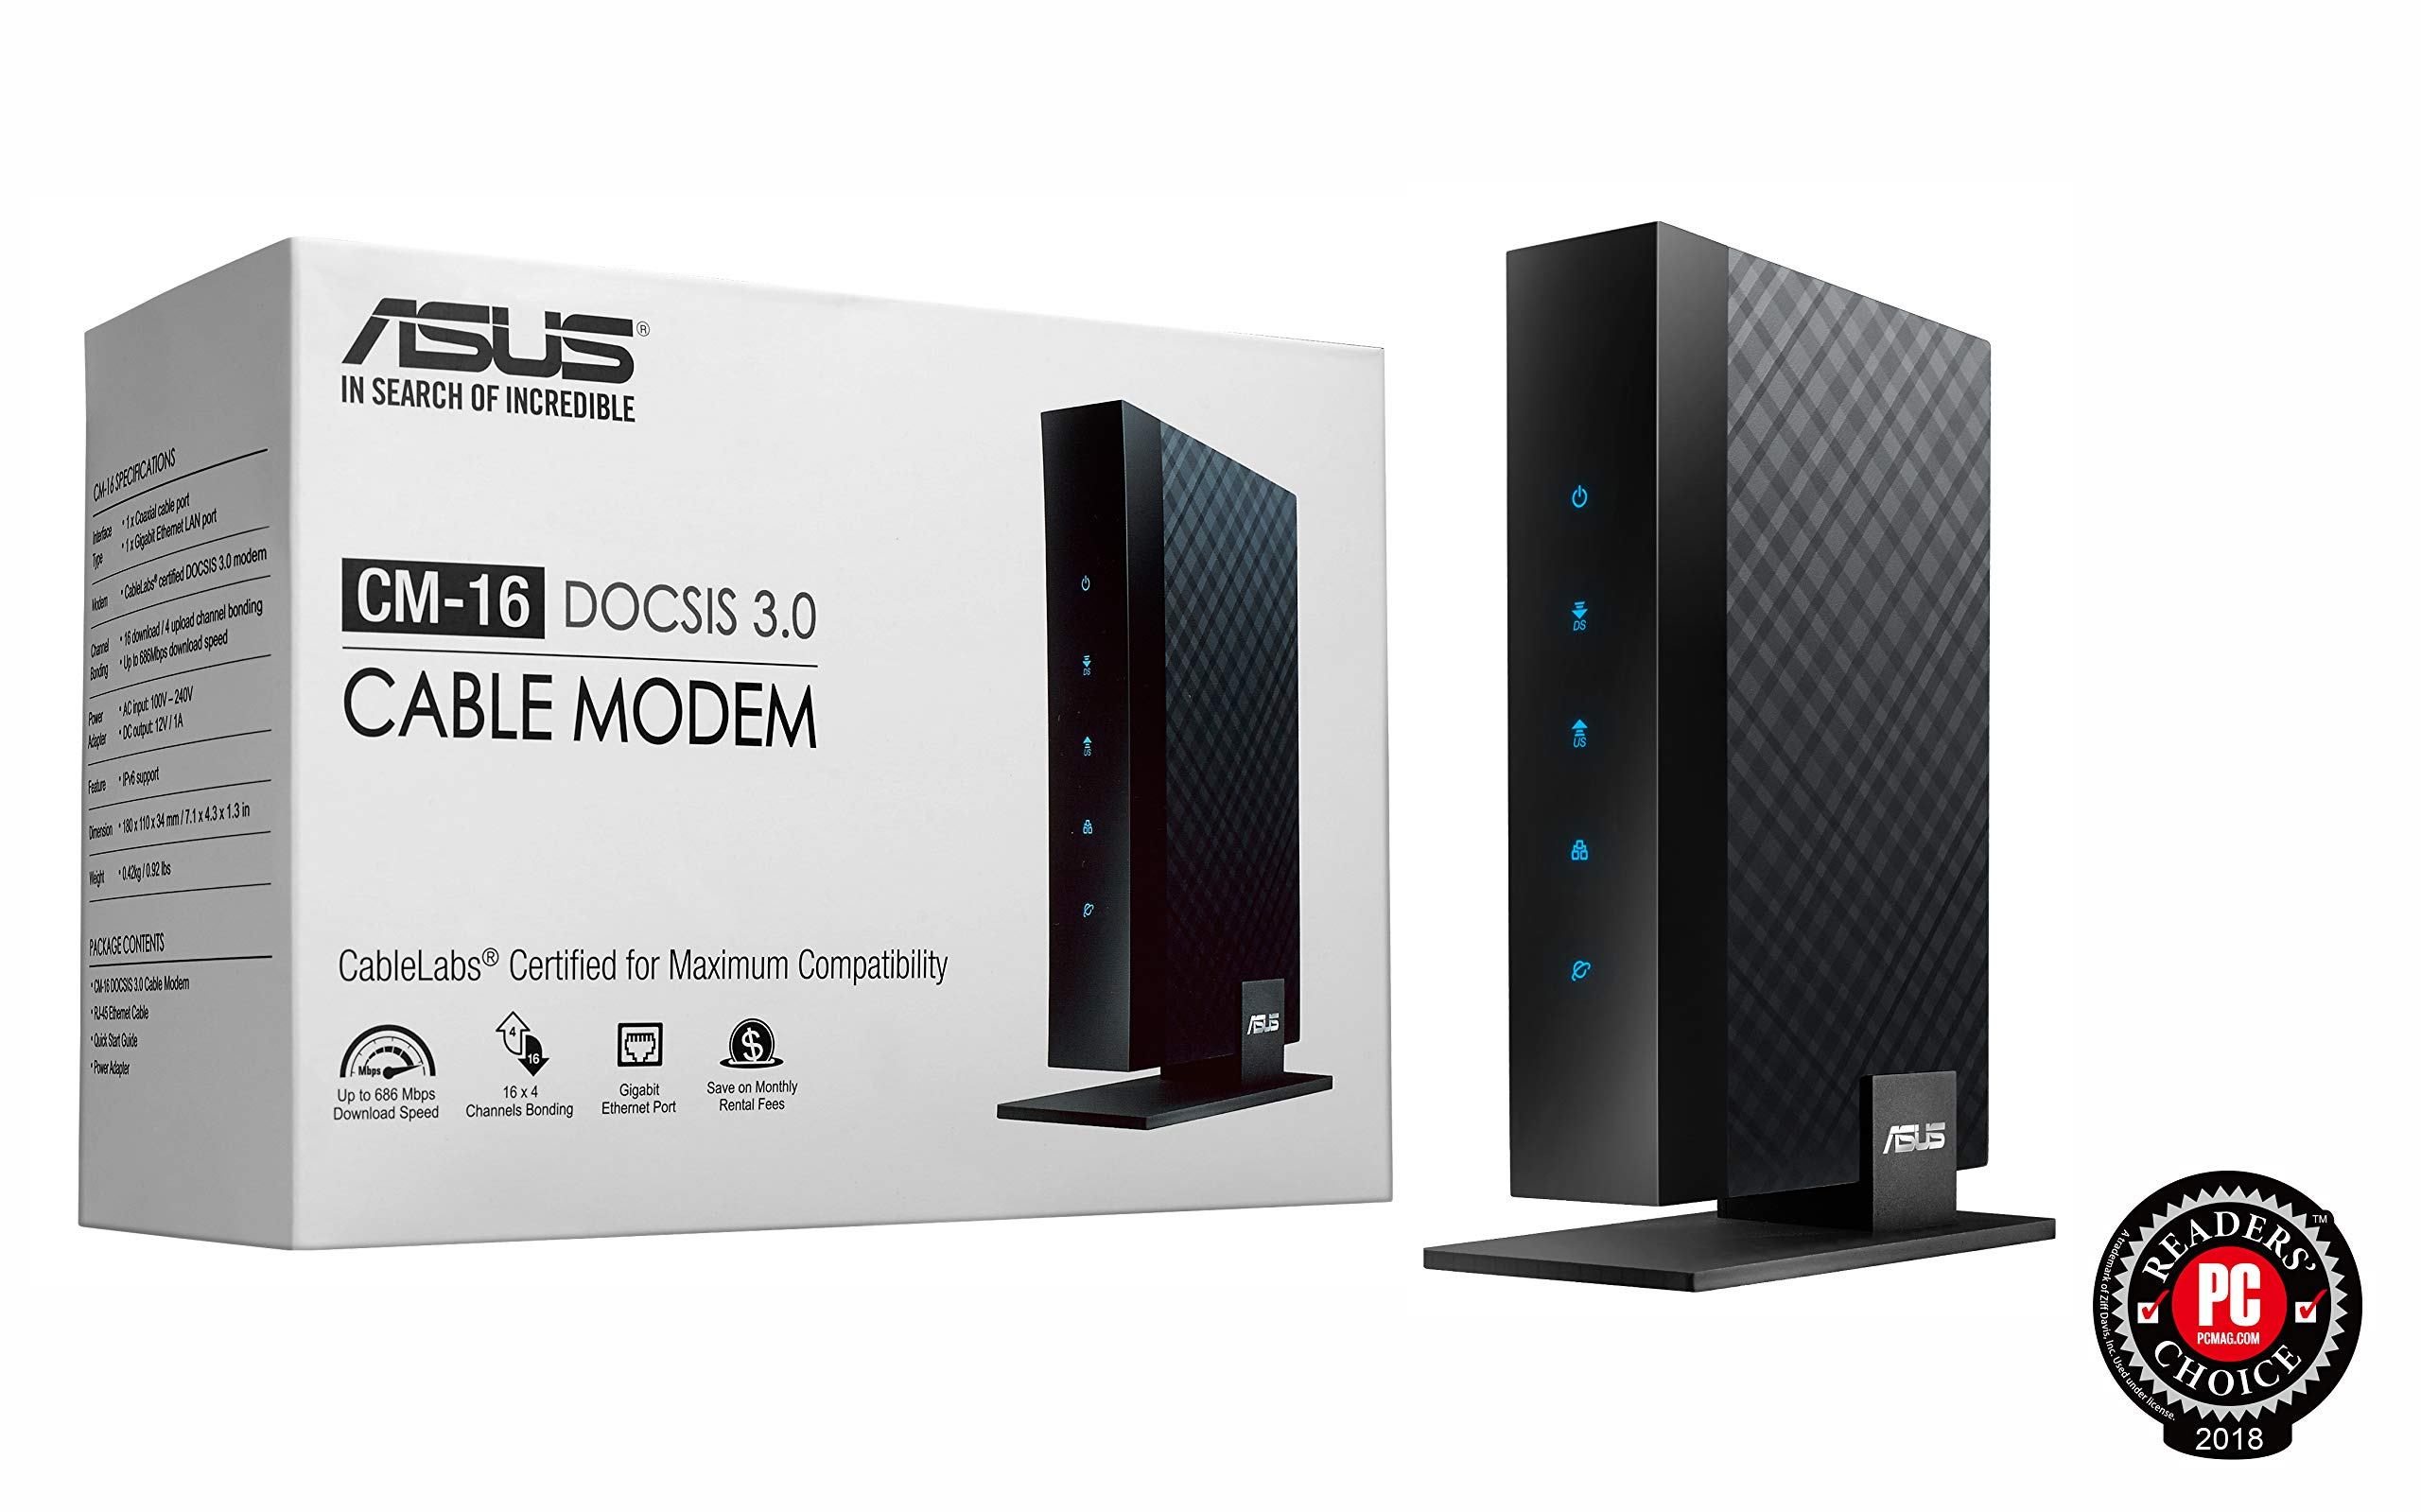 ASUS DOCSIS 3.0 High Speed 16 x 4 Cable Modem, Max. Download Speed 686 Mbps, Certified for Xfinity from Comcast, Spectrum and Cox , Separate wireless router required for Wi-Fi connectivity (CM-16)